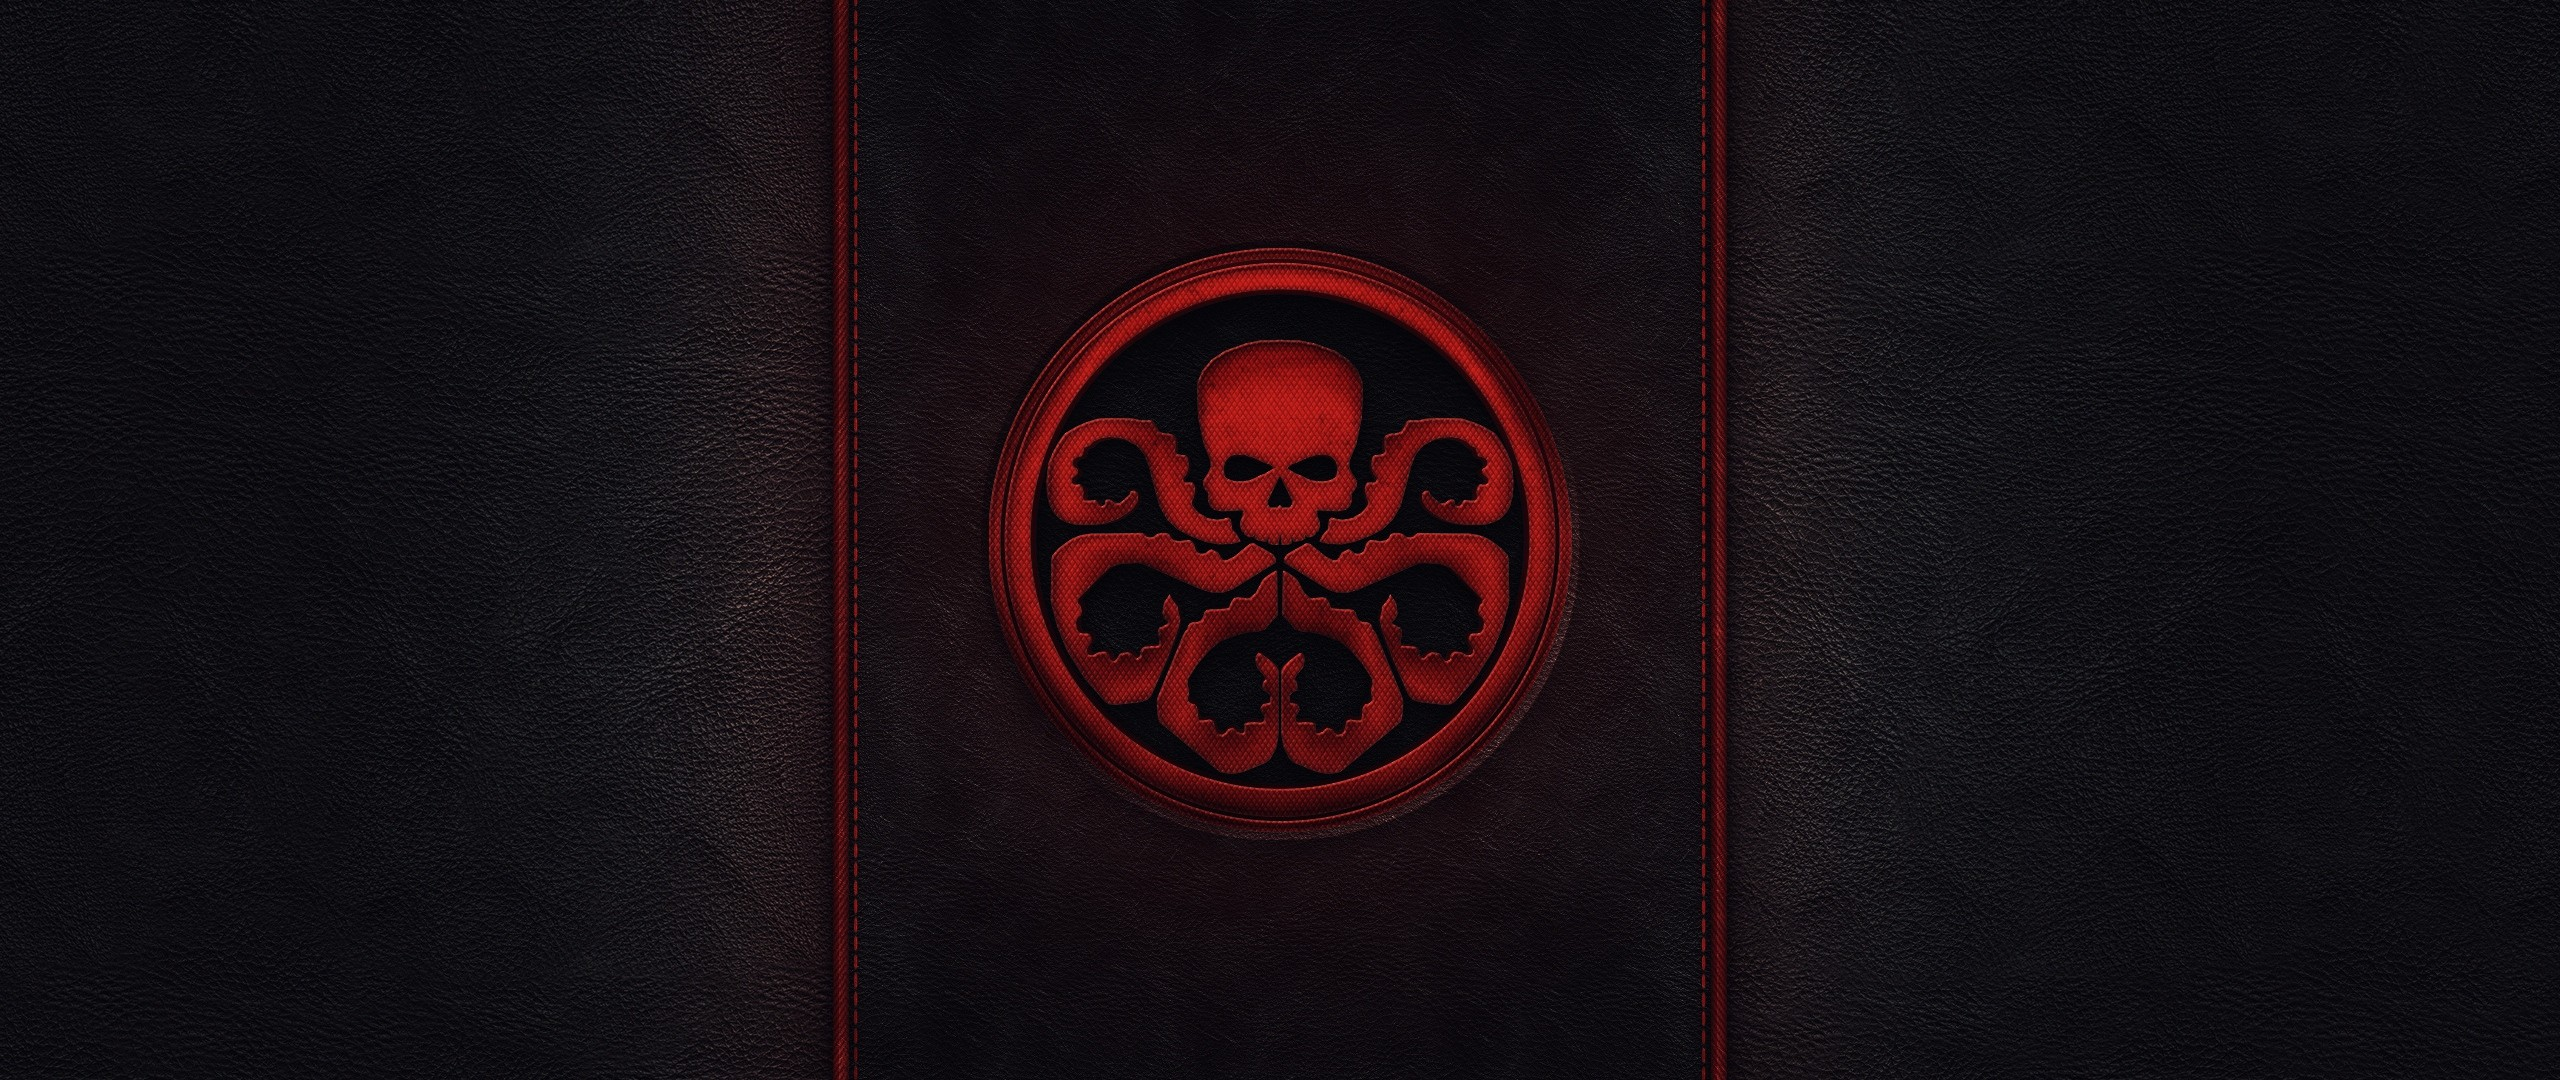 2560x1080  Wallpaper skull, captain america, style, minimalism, tentacles,  sign, hydra